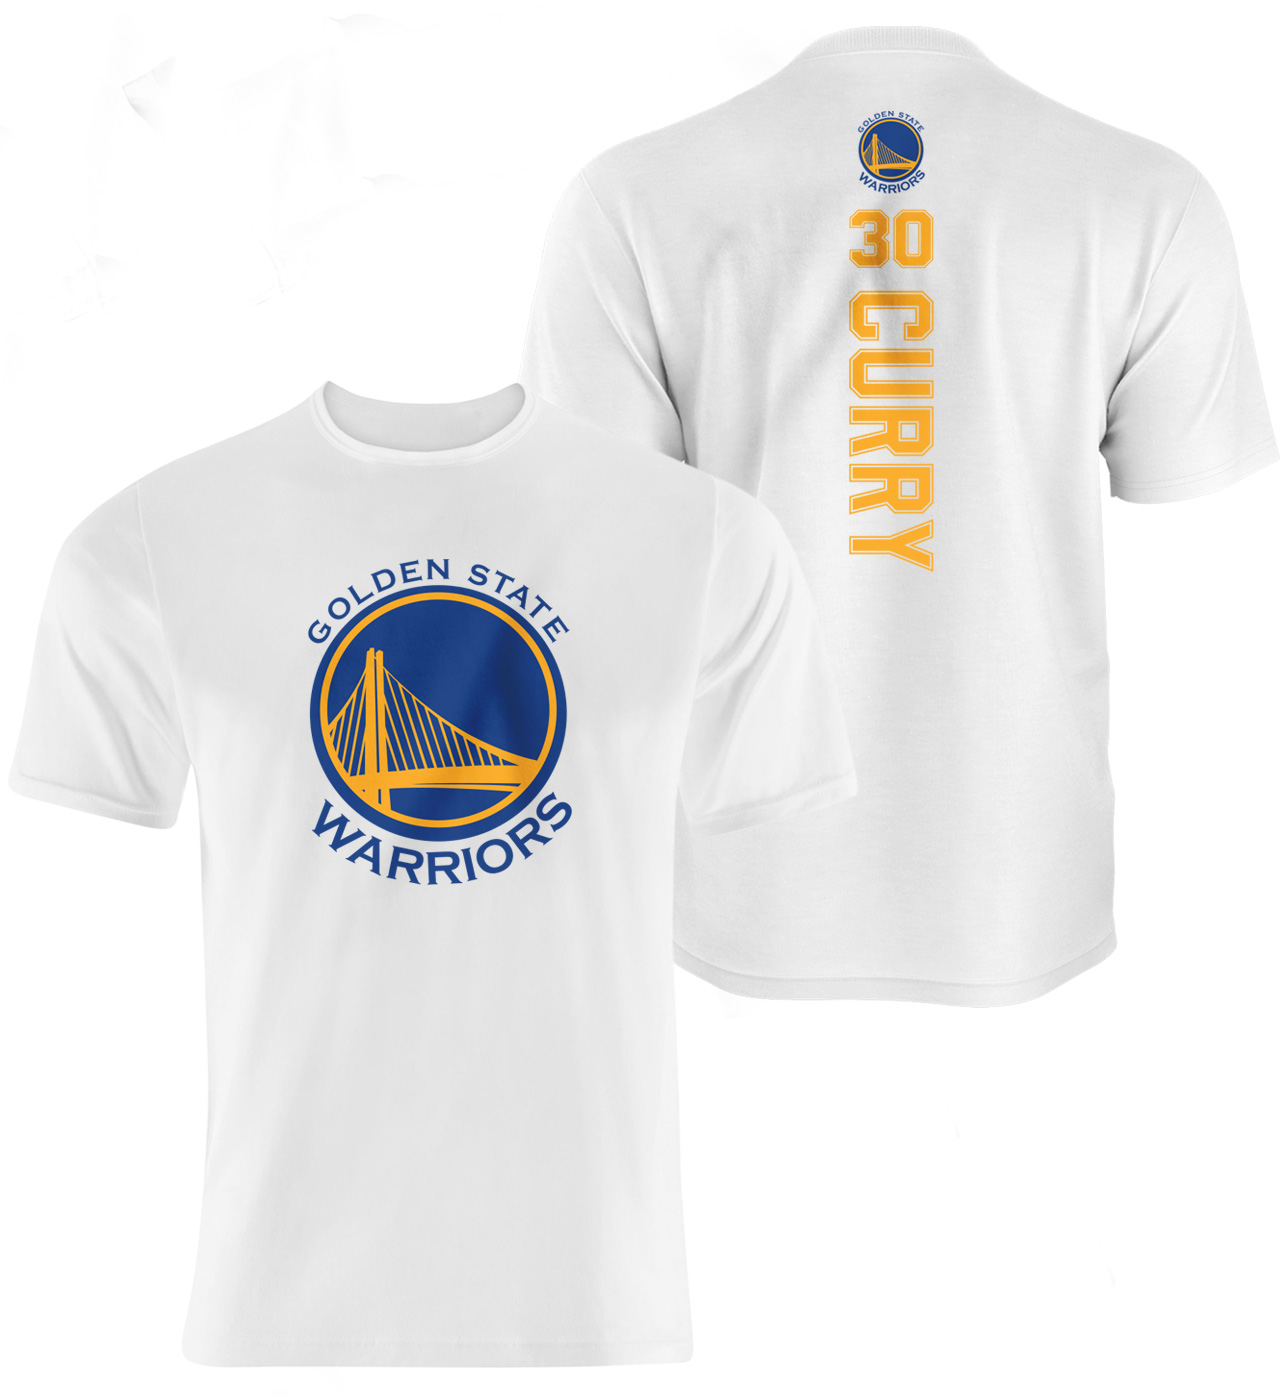 Golden State Warriors Stephen Curry Vertical Tshirt (TSH-white-097-PLYR-GSW-CURRY.VER)